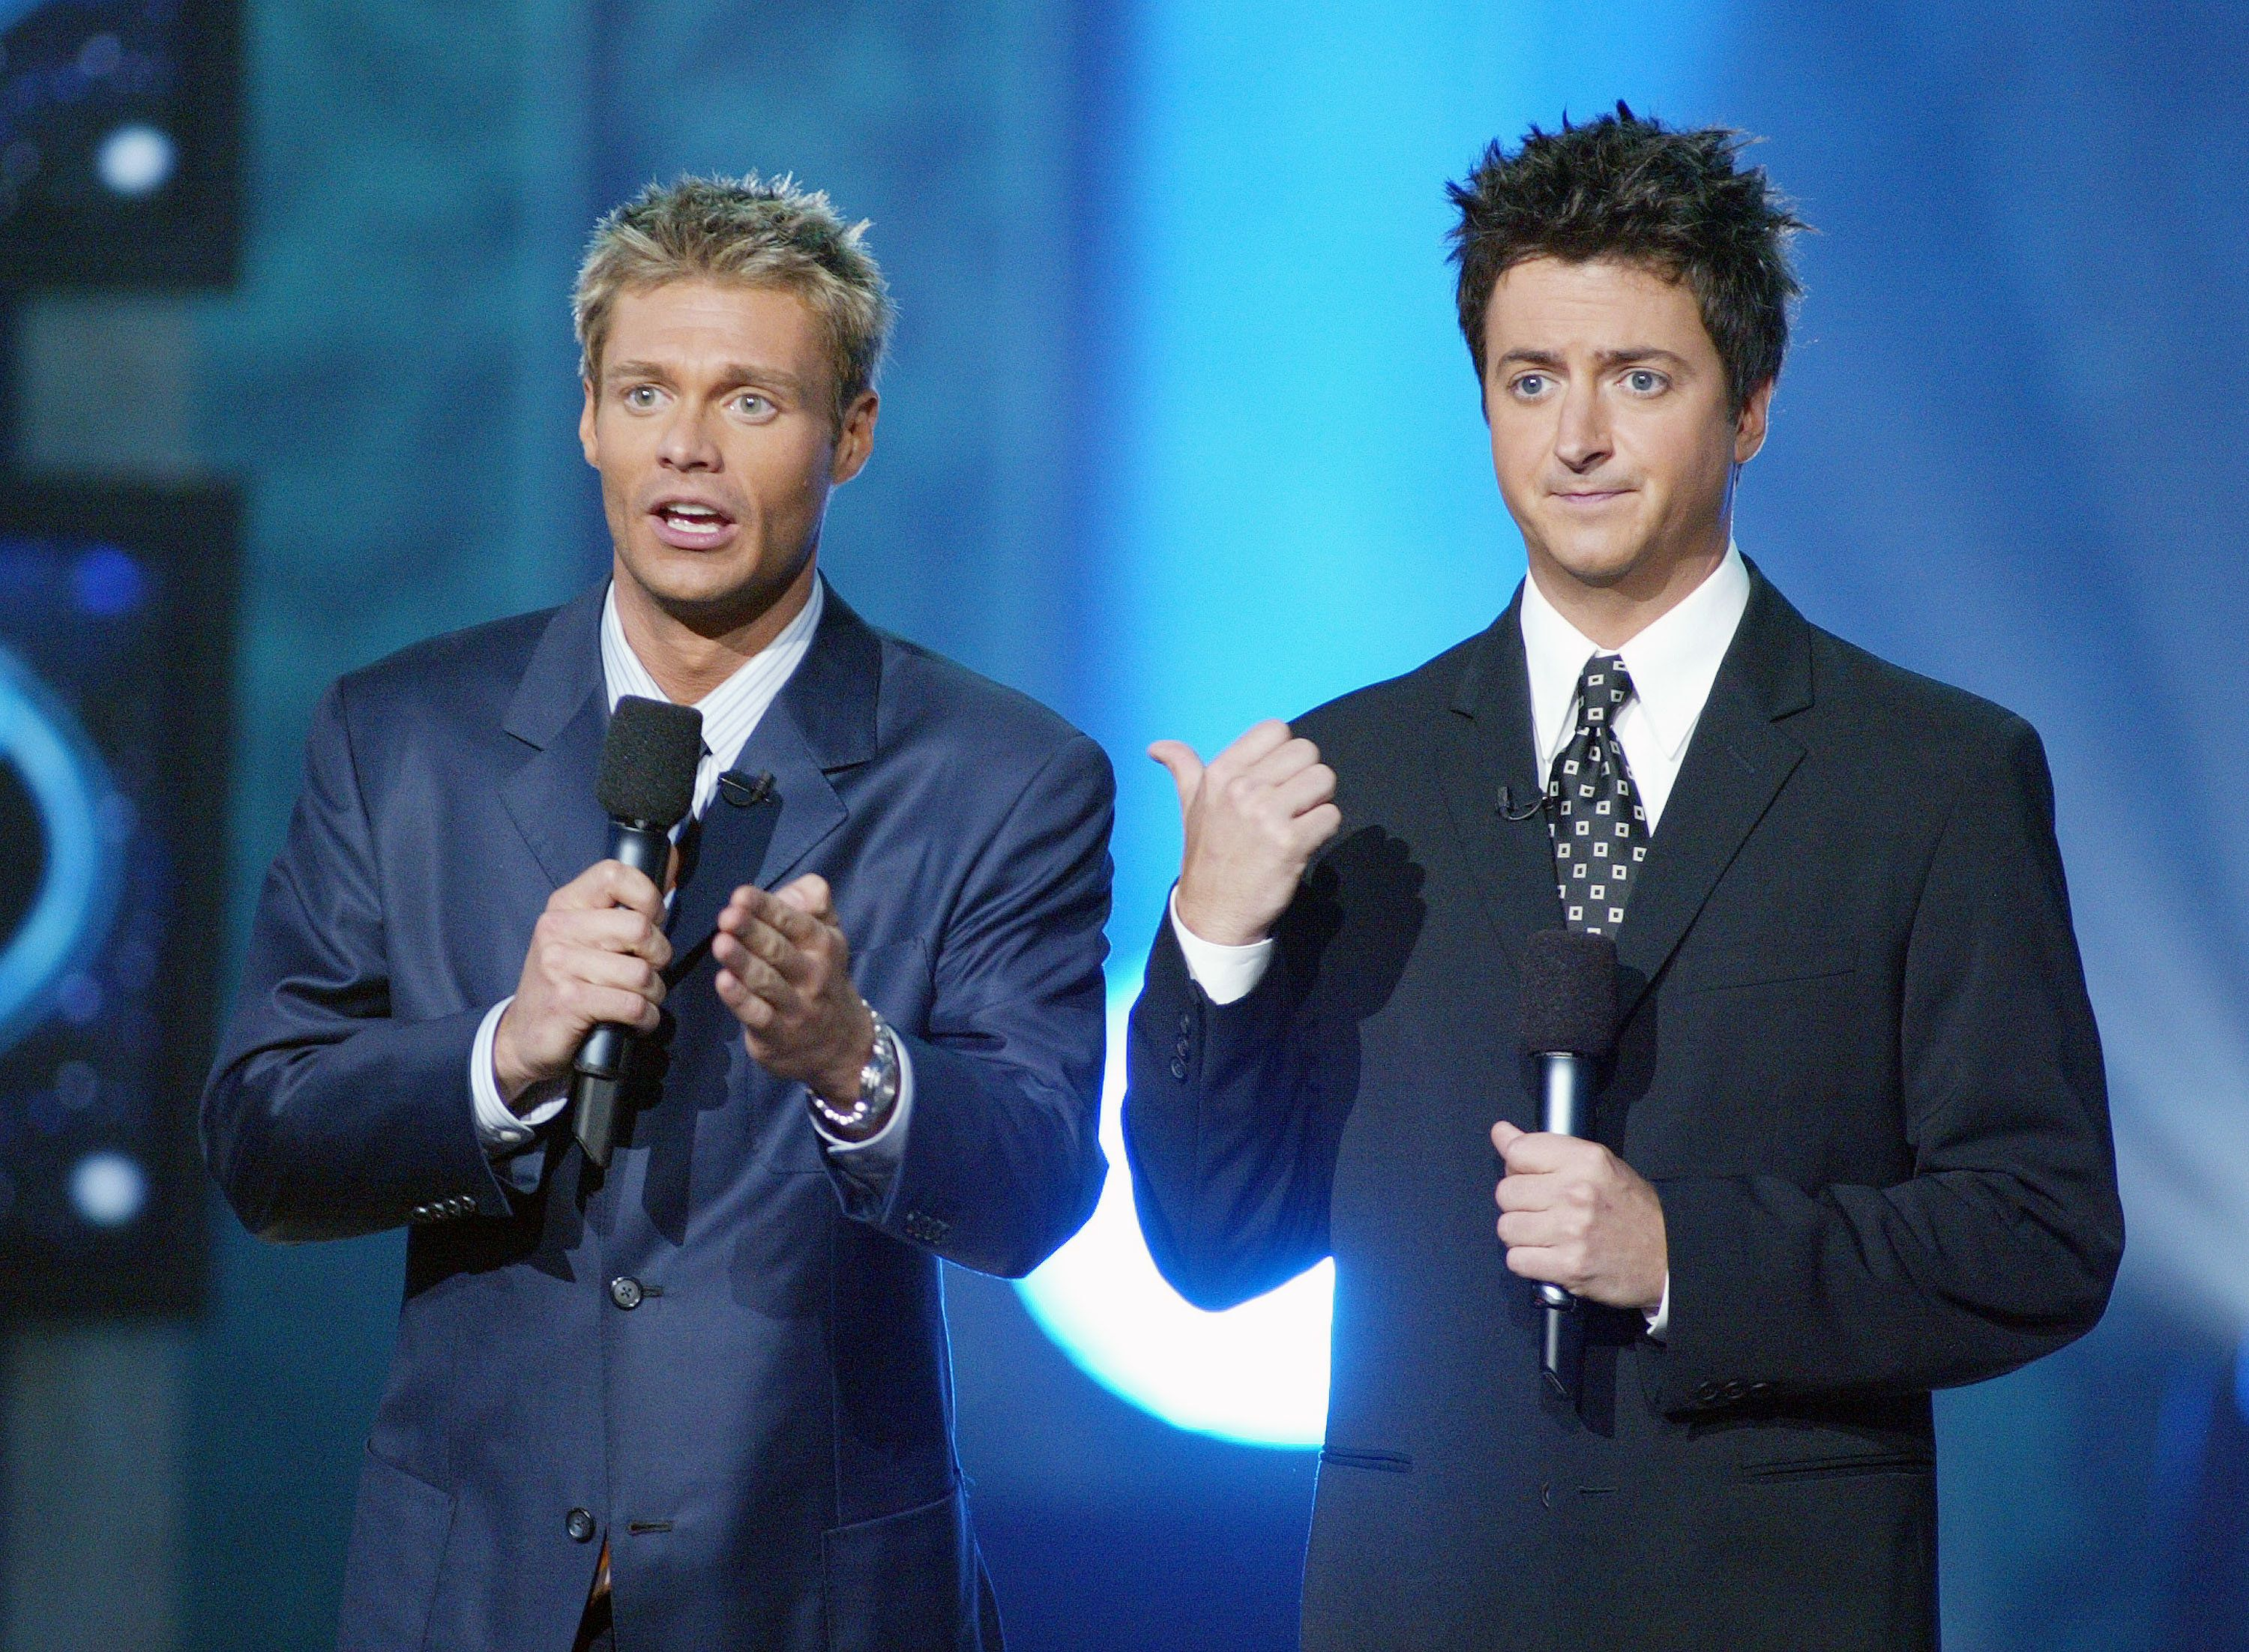 """Brian Dunkleman shared the spotlight with Ryan Seacrest in the first season of """"American Idol,"""" but their careers took drasti"""